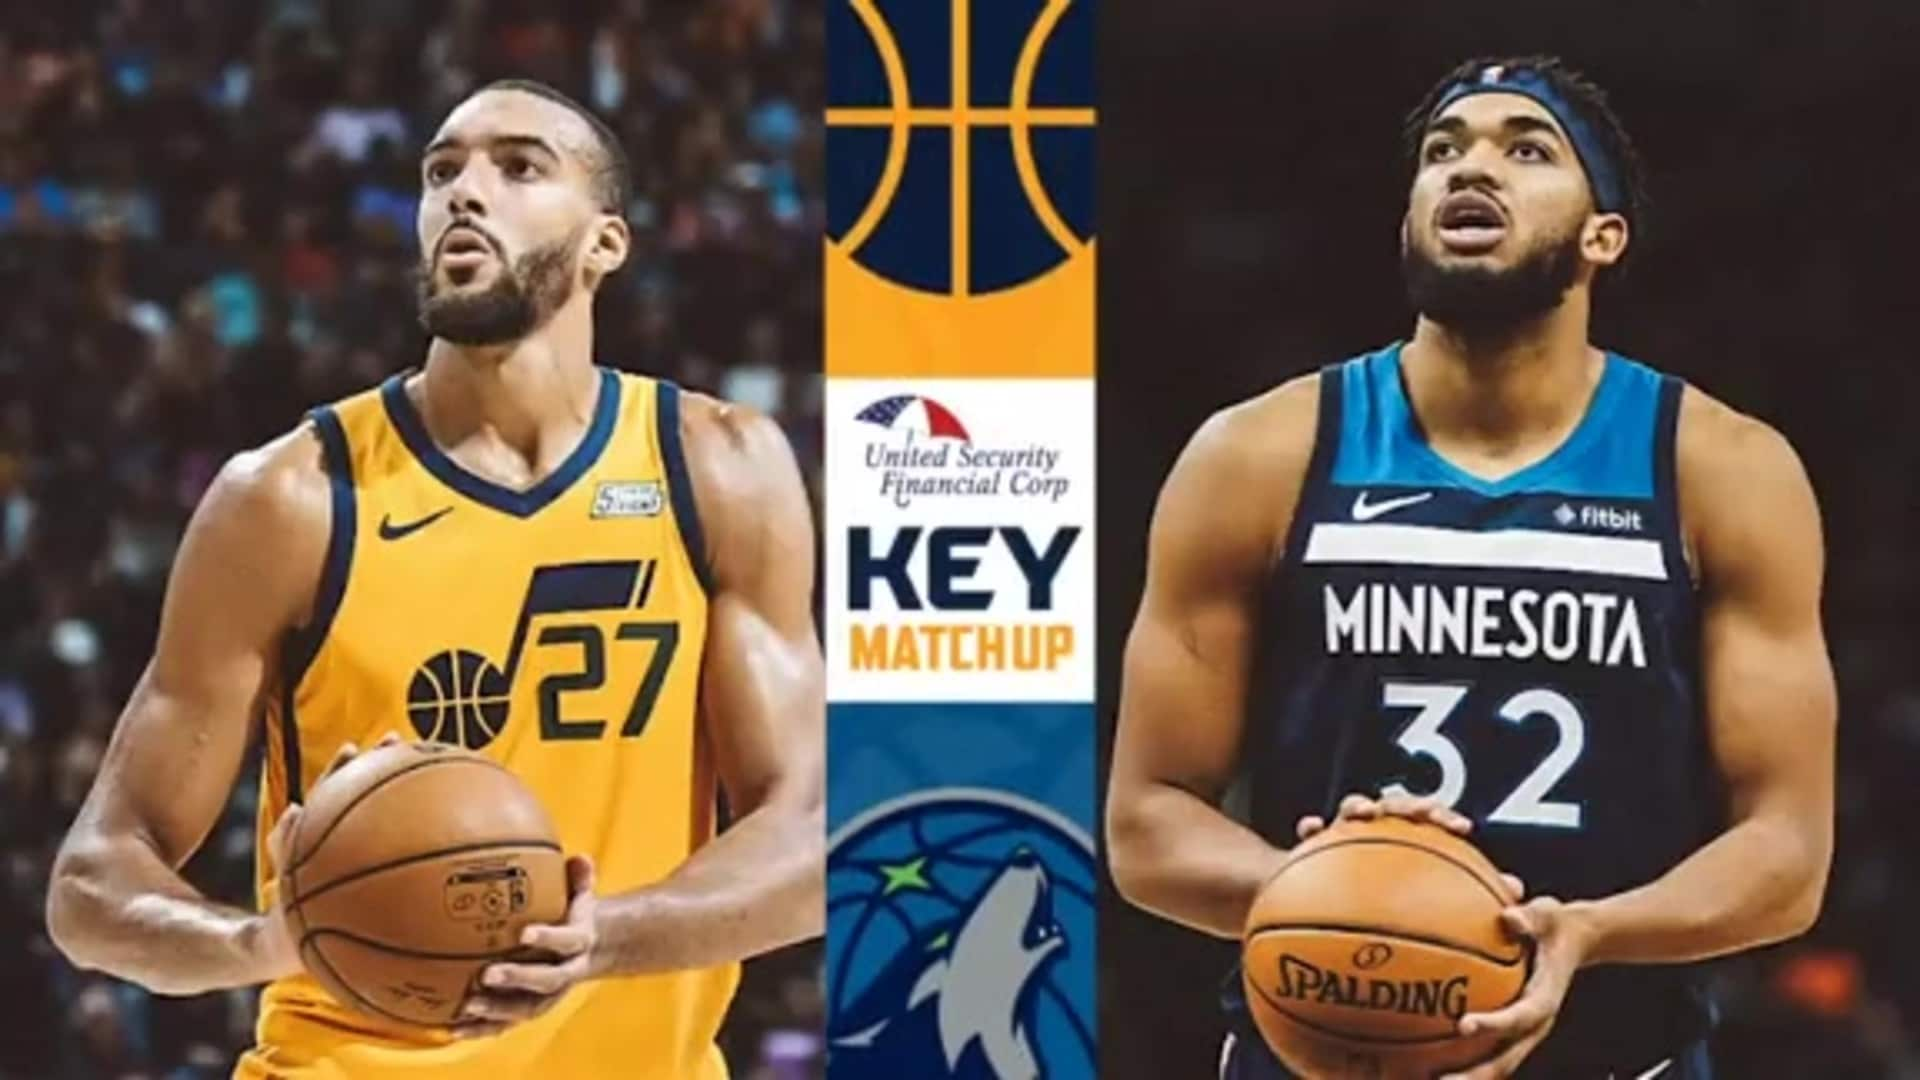 Rudy Gobert vs. Karl-Anthony Towns–Key Matchup